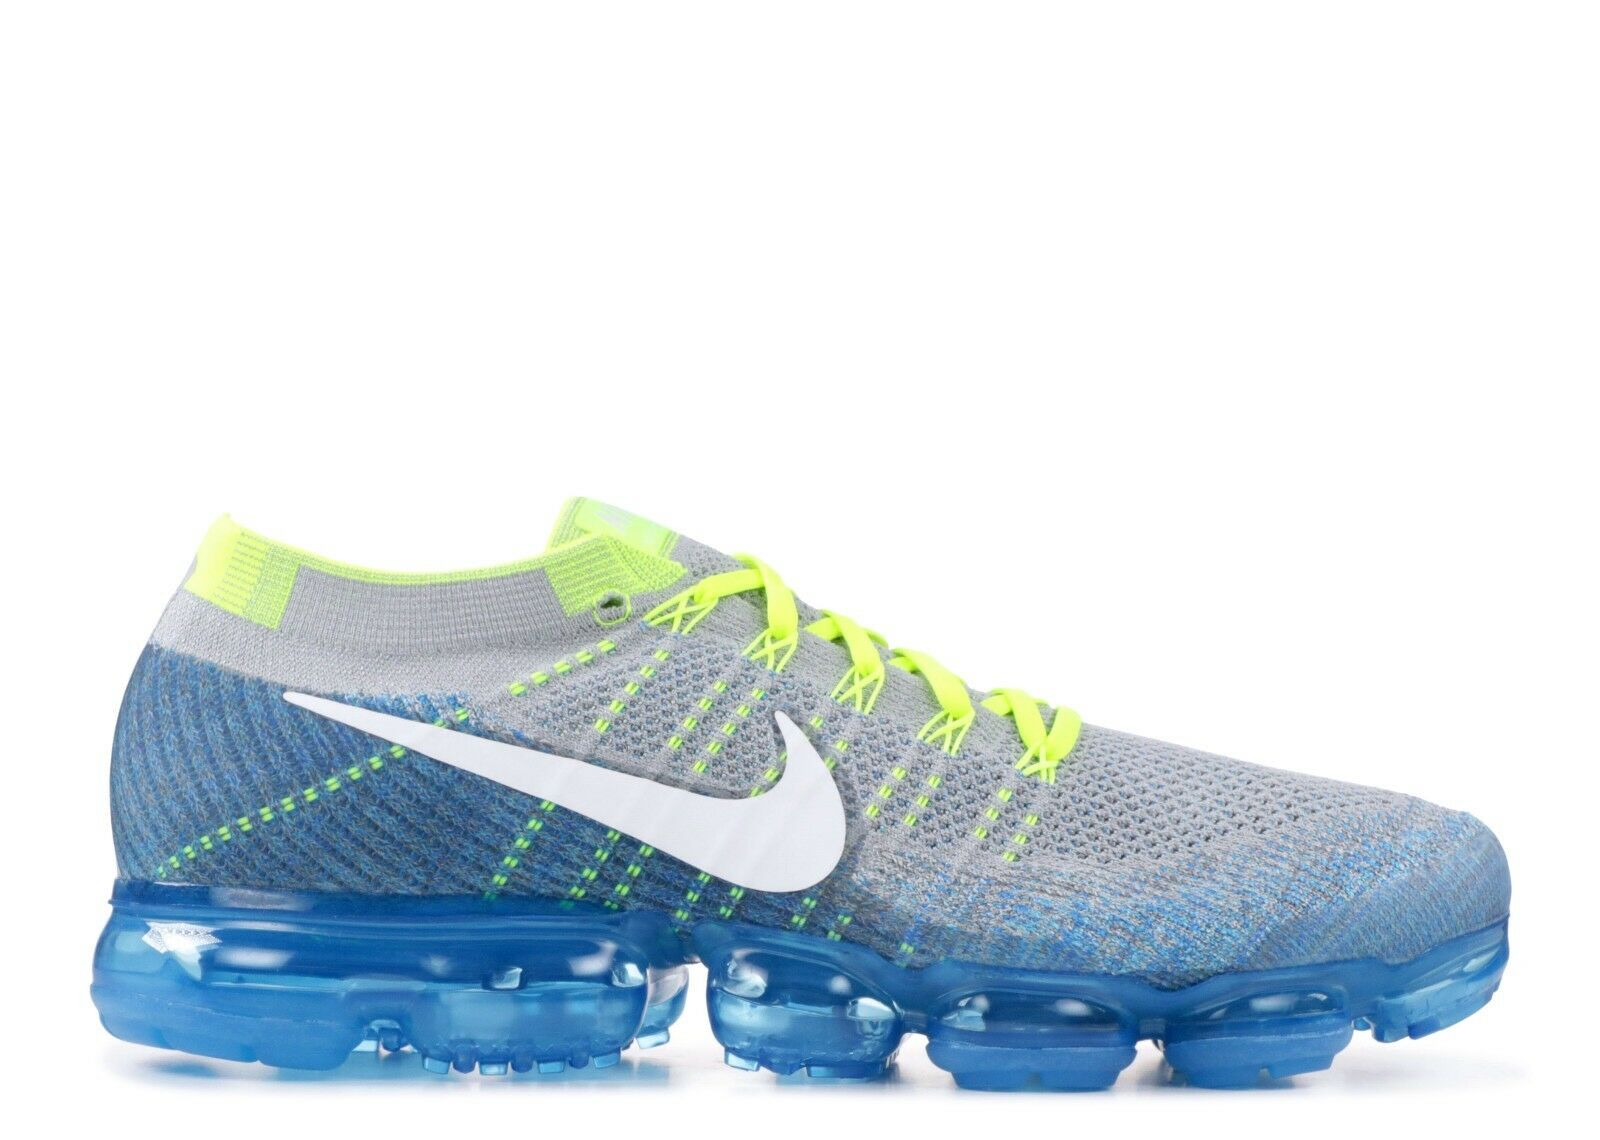 42be5c29b44b New New New Nike Air Vapormax Flyknit Sprite Wolf Grey Chlorine Blue 849558  022 Size10.